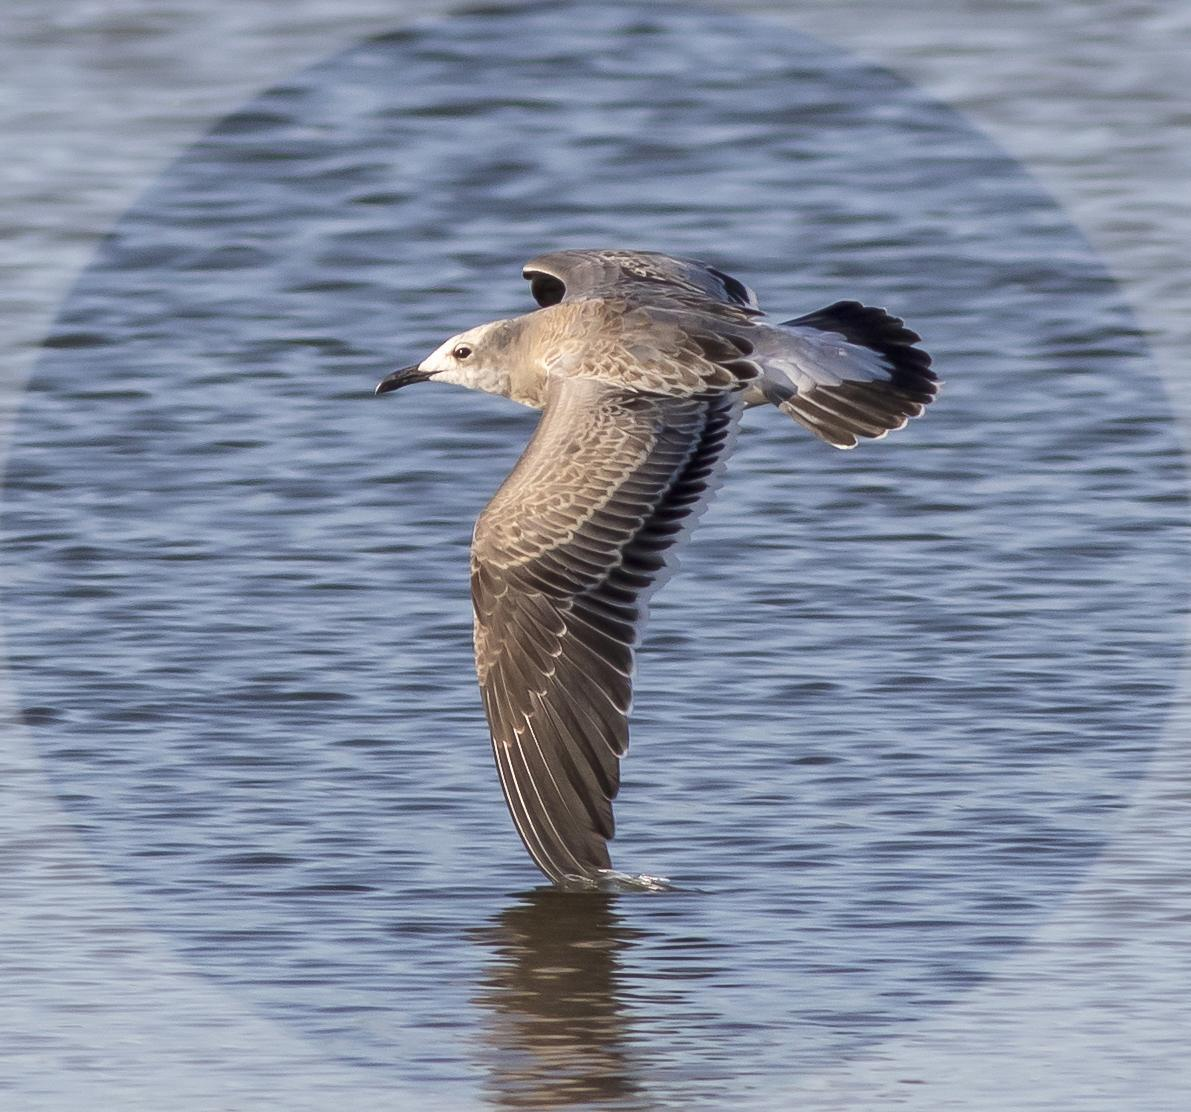 Laughing Gull Photo by Tom Gannon